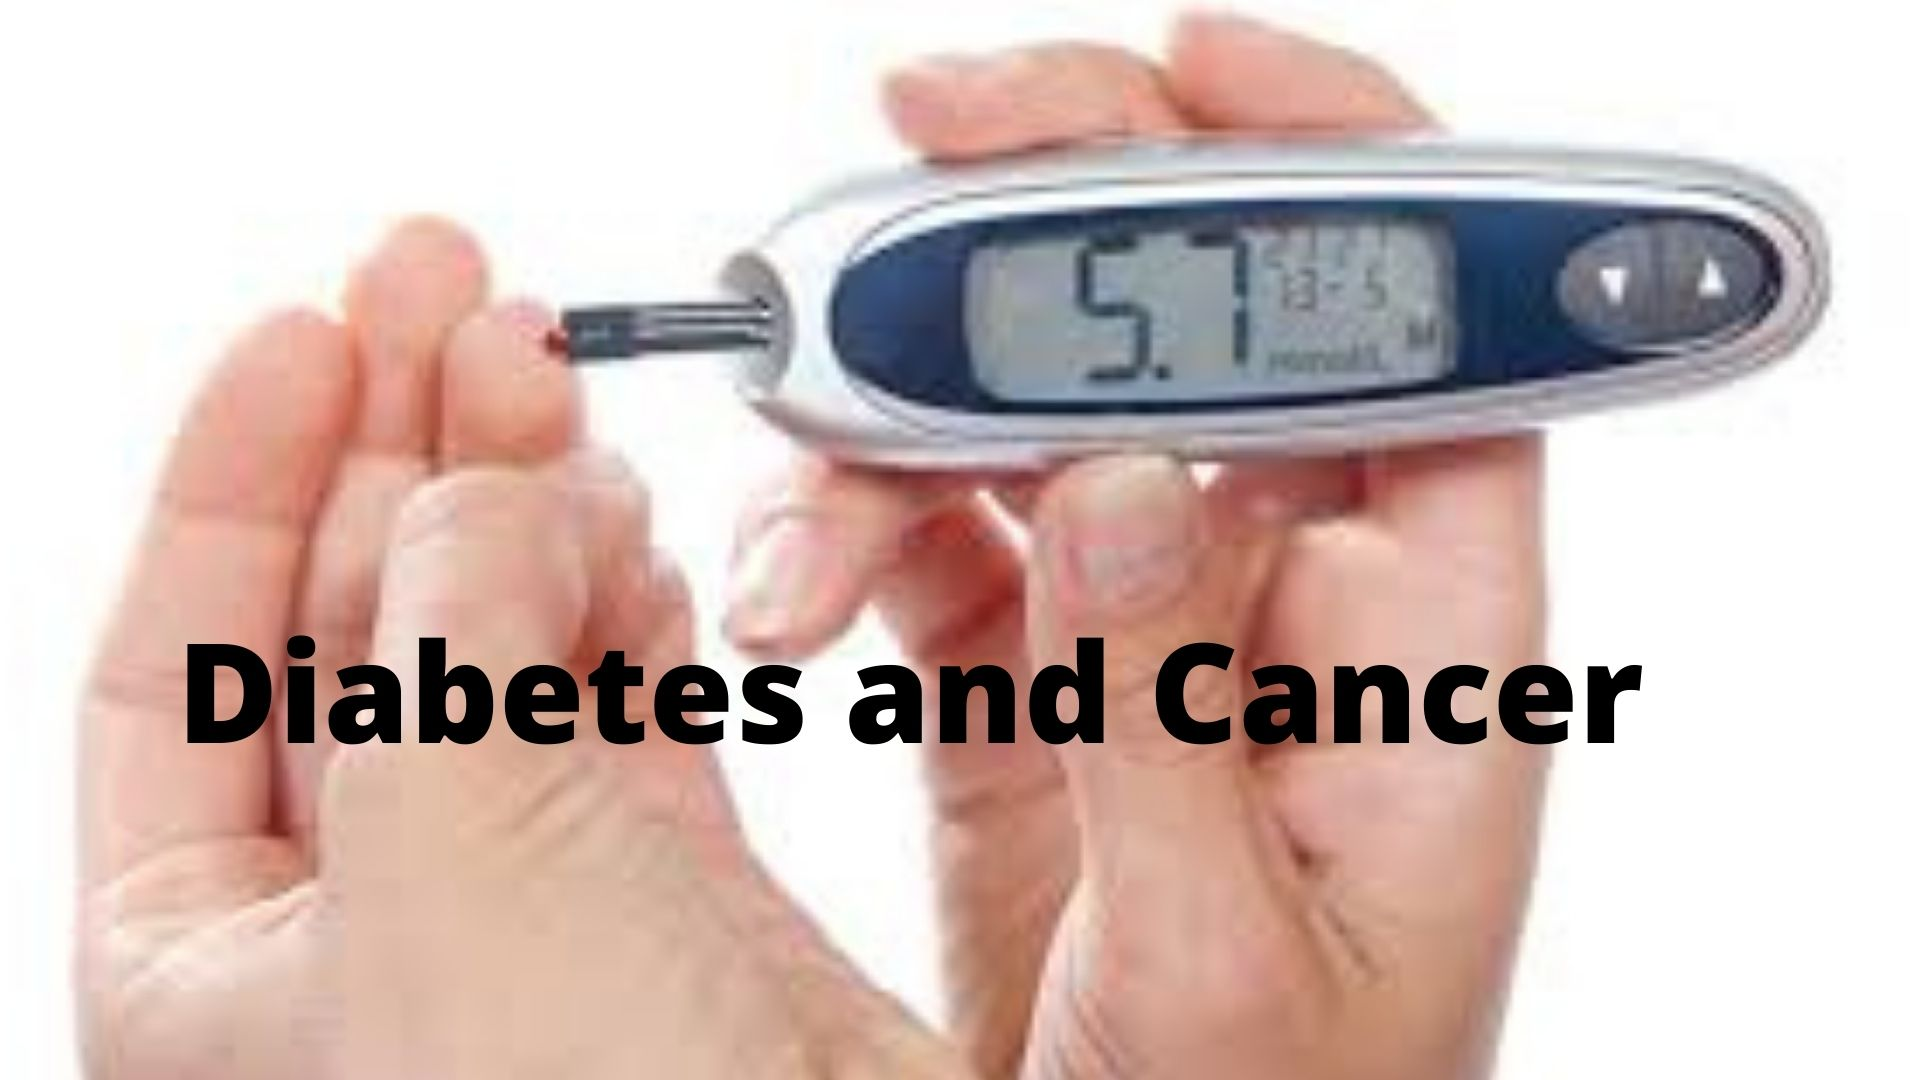 Diabetes and Cancer Photo